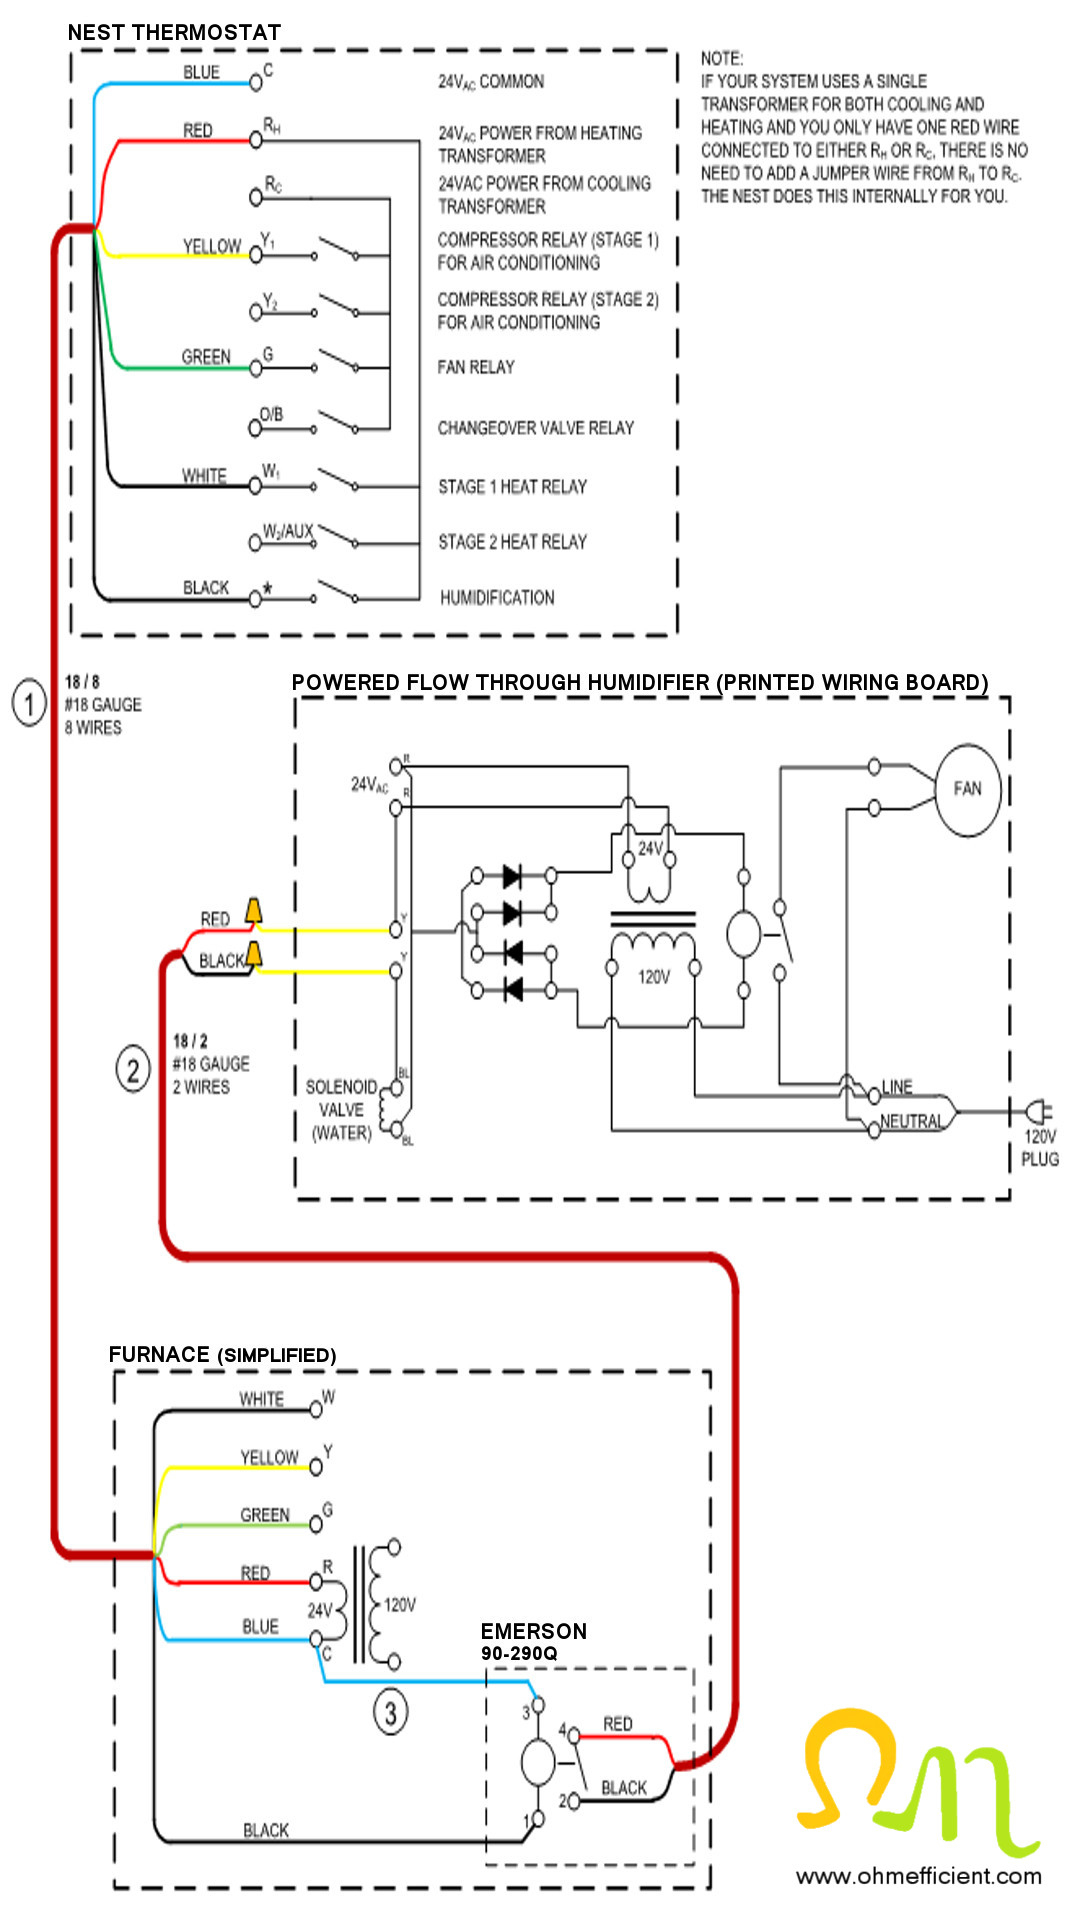 How To Connect & Setup A Nest Thermostat To Function As A Humidistat - Nest Thermostat Wiring Diagram For 2 Stage Cooling 2 Stages Heat